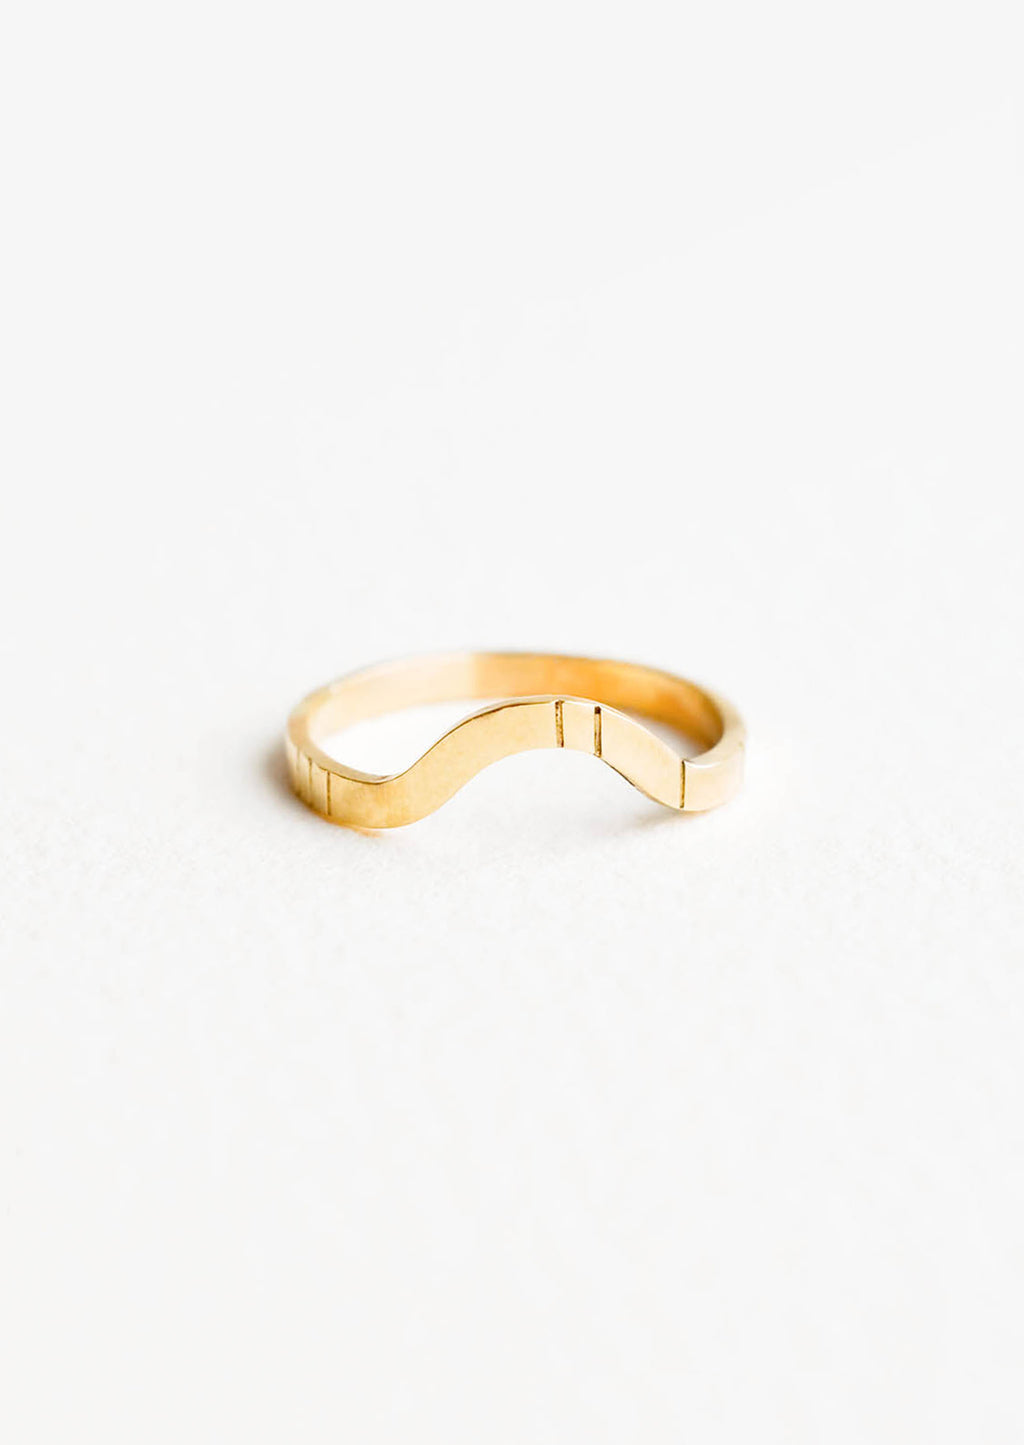 1: Wide Arc Ring